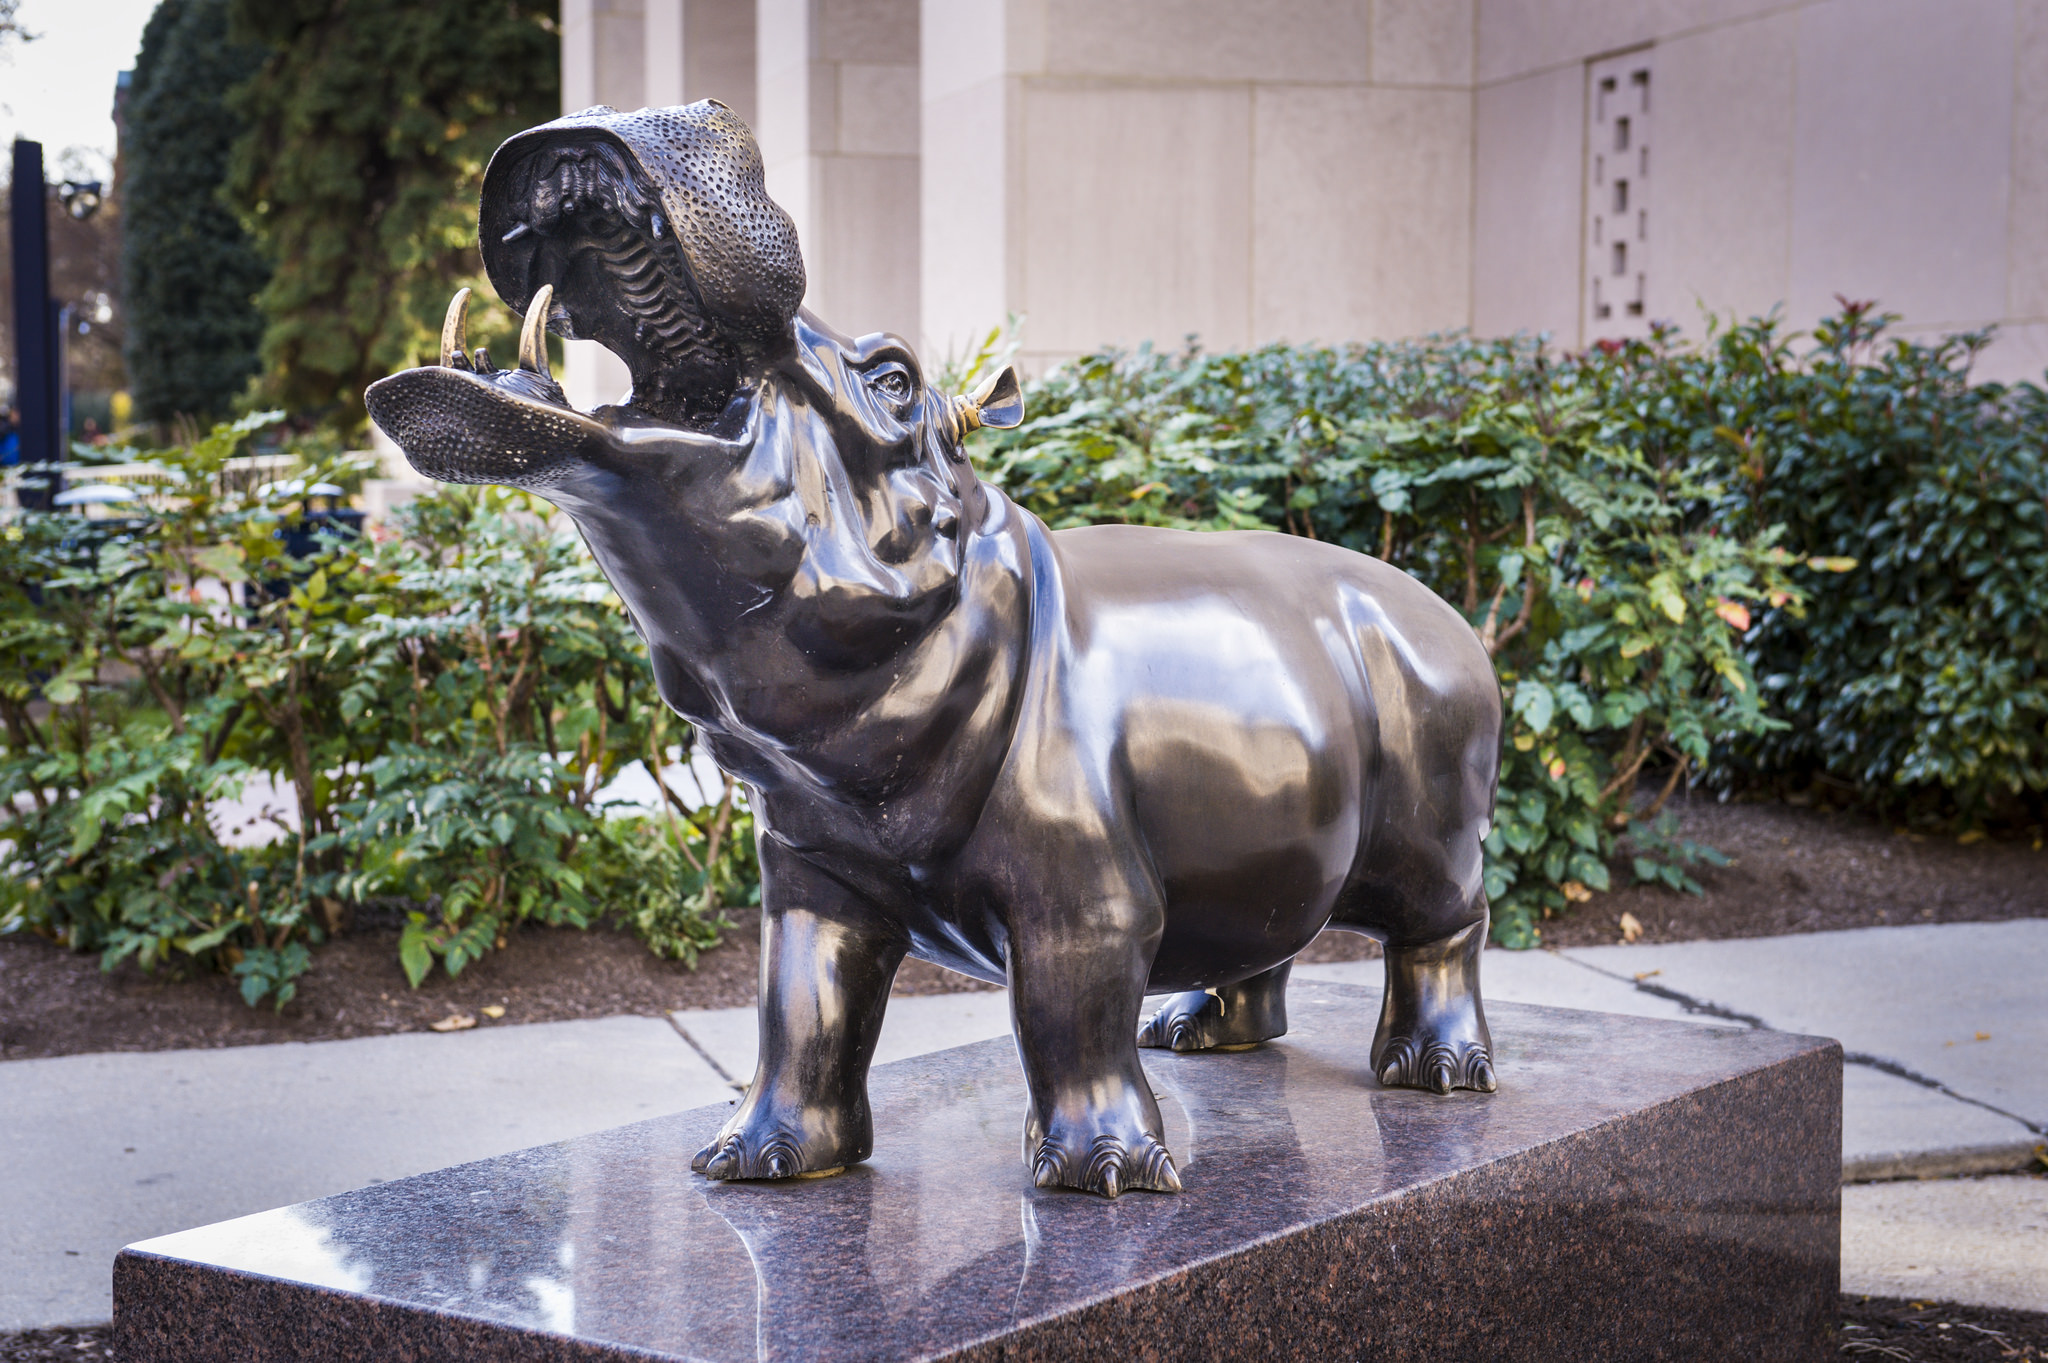 Hippo Statue at George Washington University